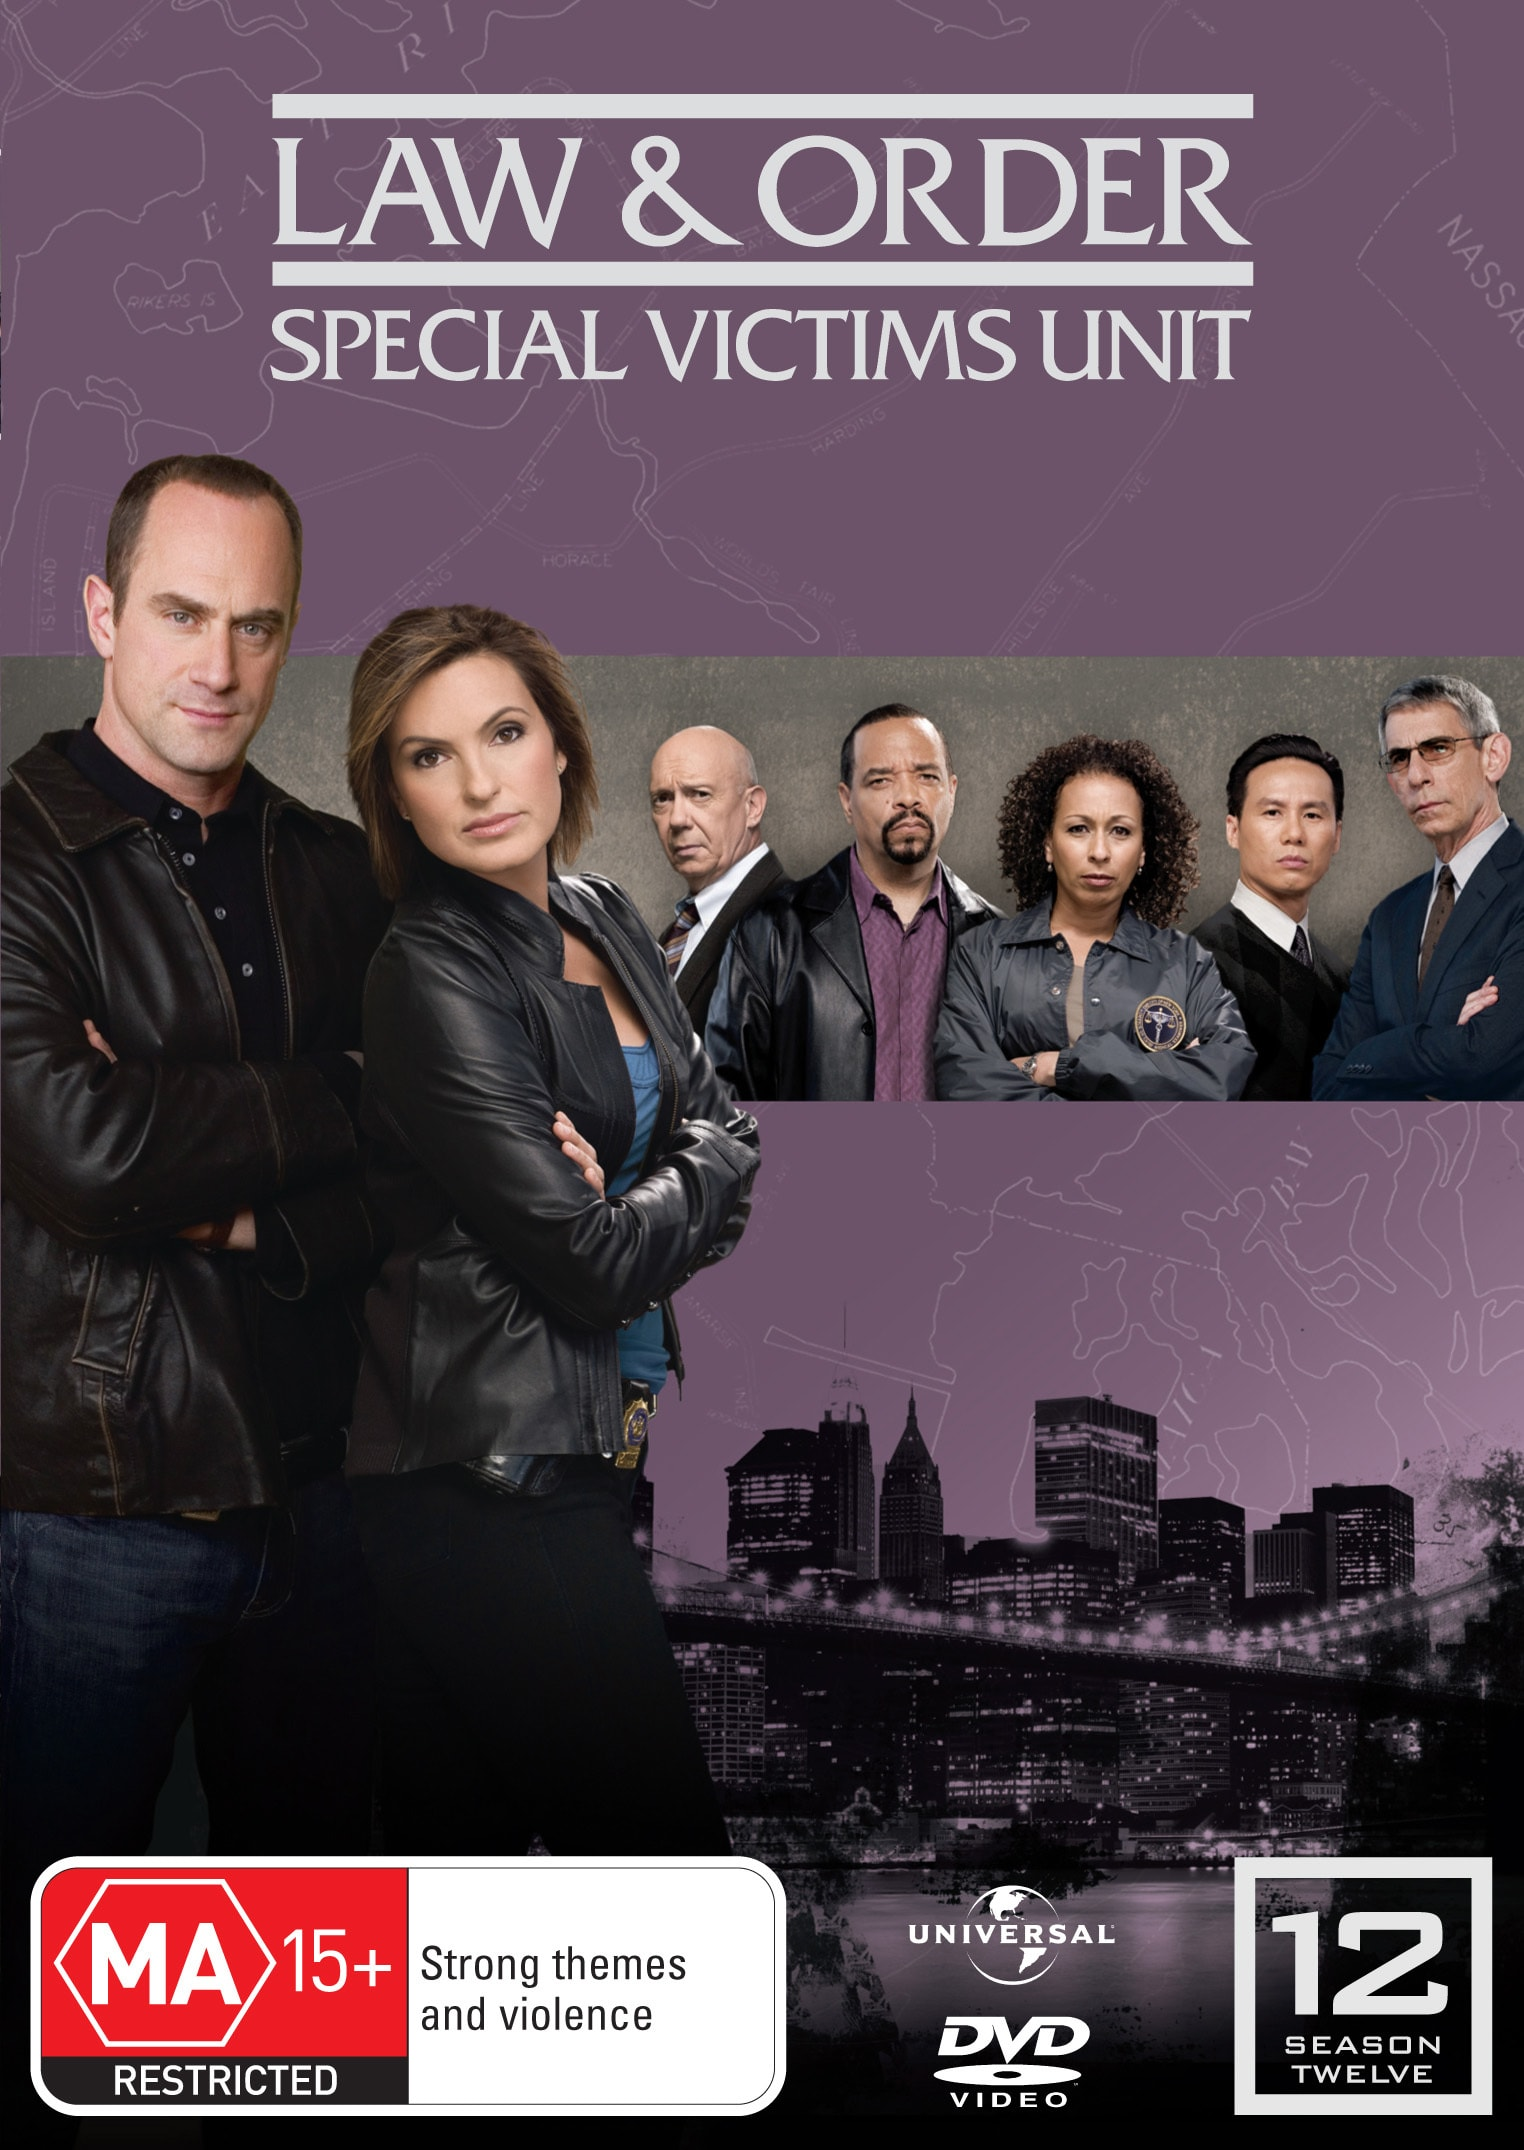 Law and Order - Special Victims Unit: Season 12 [DVD]